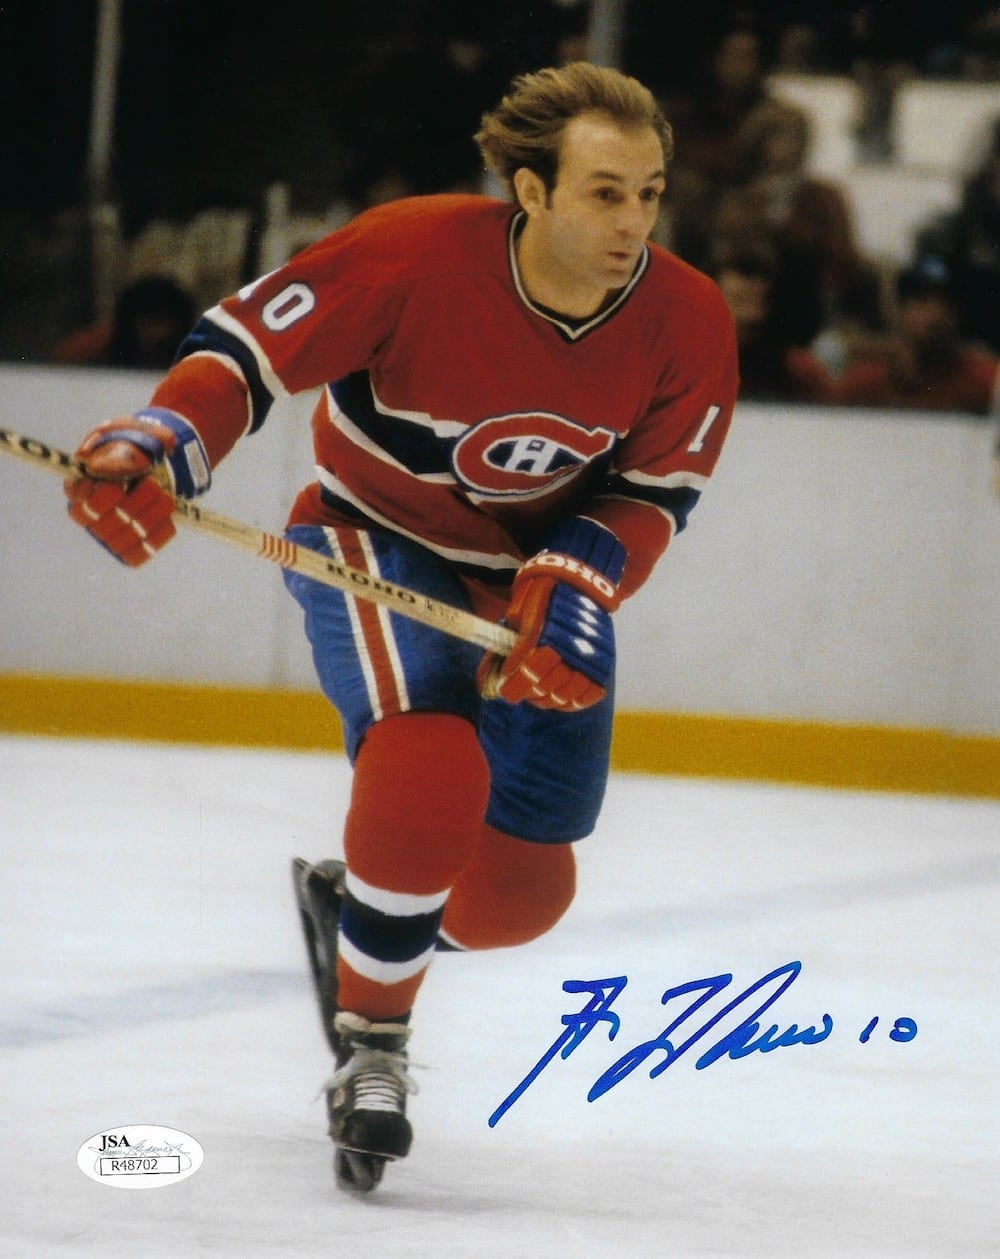 sports shoes ae24b af0fb Guy Lafleur Autographed Montreal Canadiens 8x10 Photo